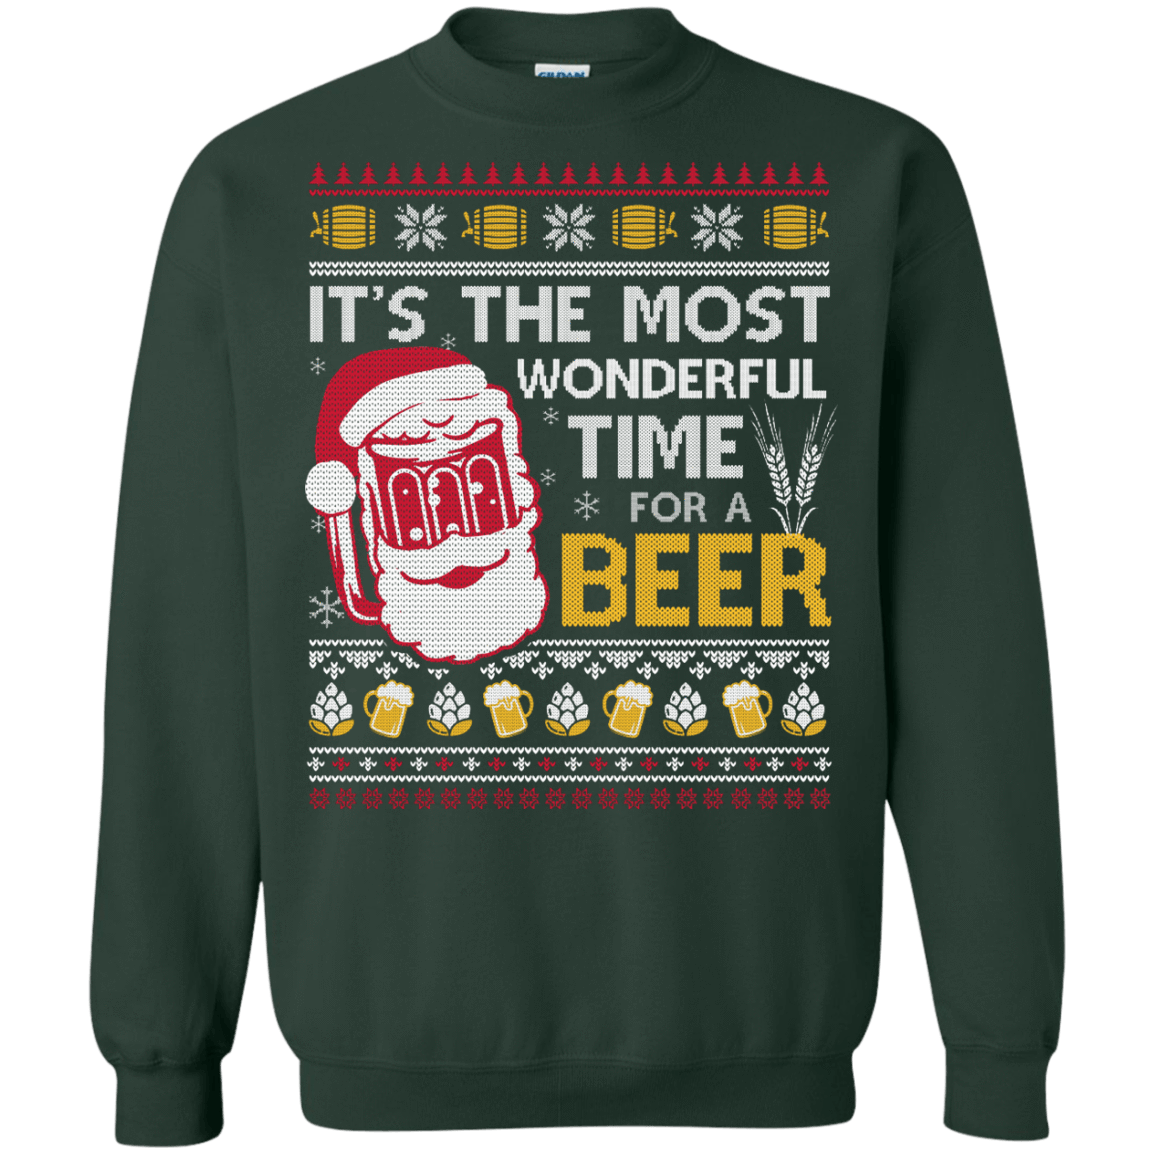 d75f36f83 It's The Most Wonderful Time For A Beer Ugly Sweater Shirt ...